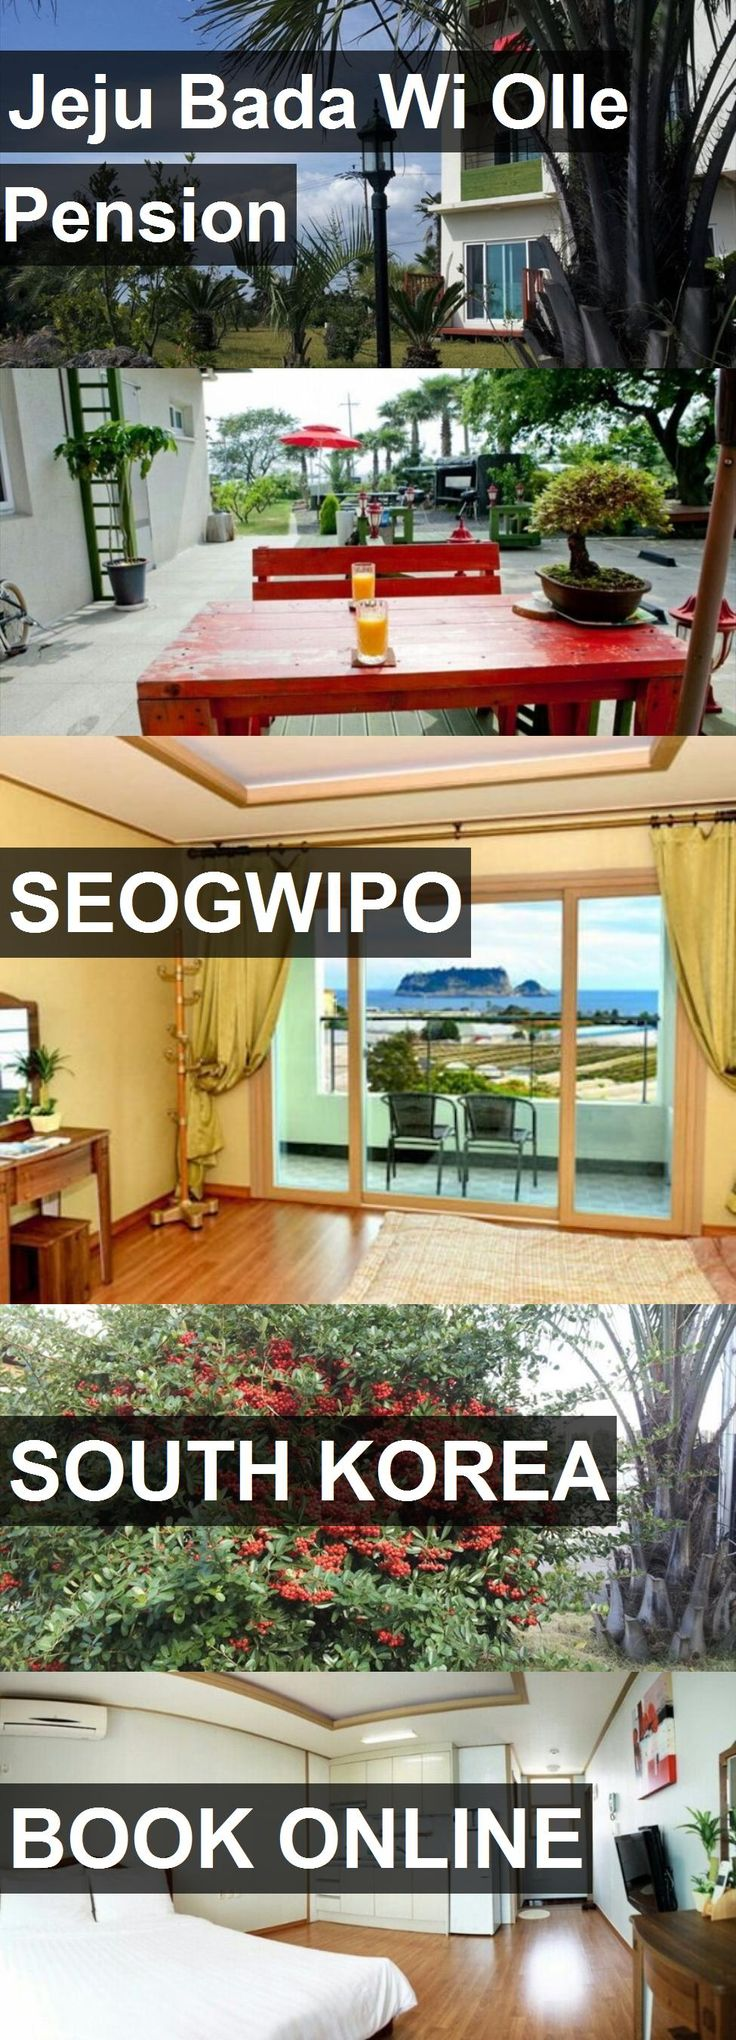 Hotel Jeju Bada Wi Olle Pension in Seogwipo, South Korea. For more information, photos, reviews and best prices please follow the link. #SouthKorea #Seogwipo #travel #vacation #hotel